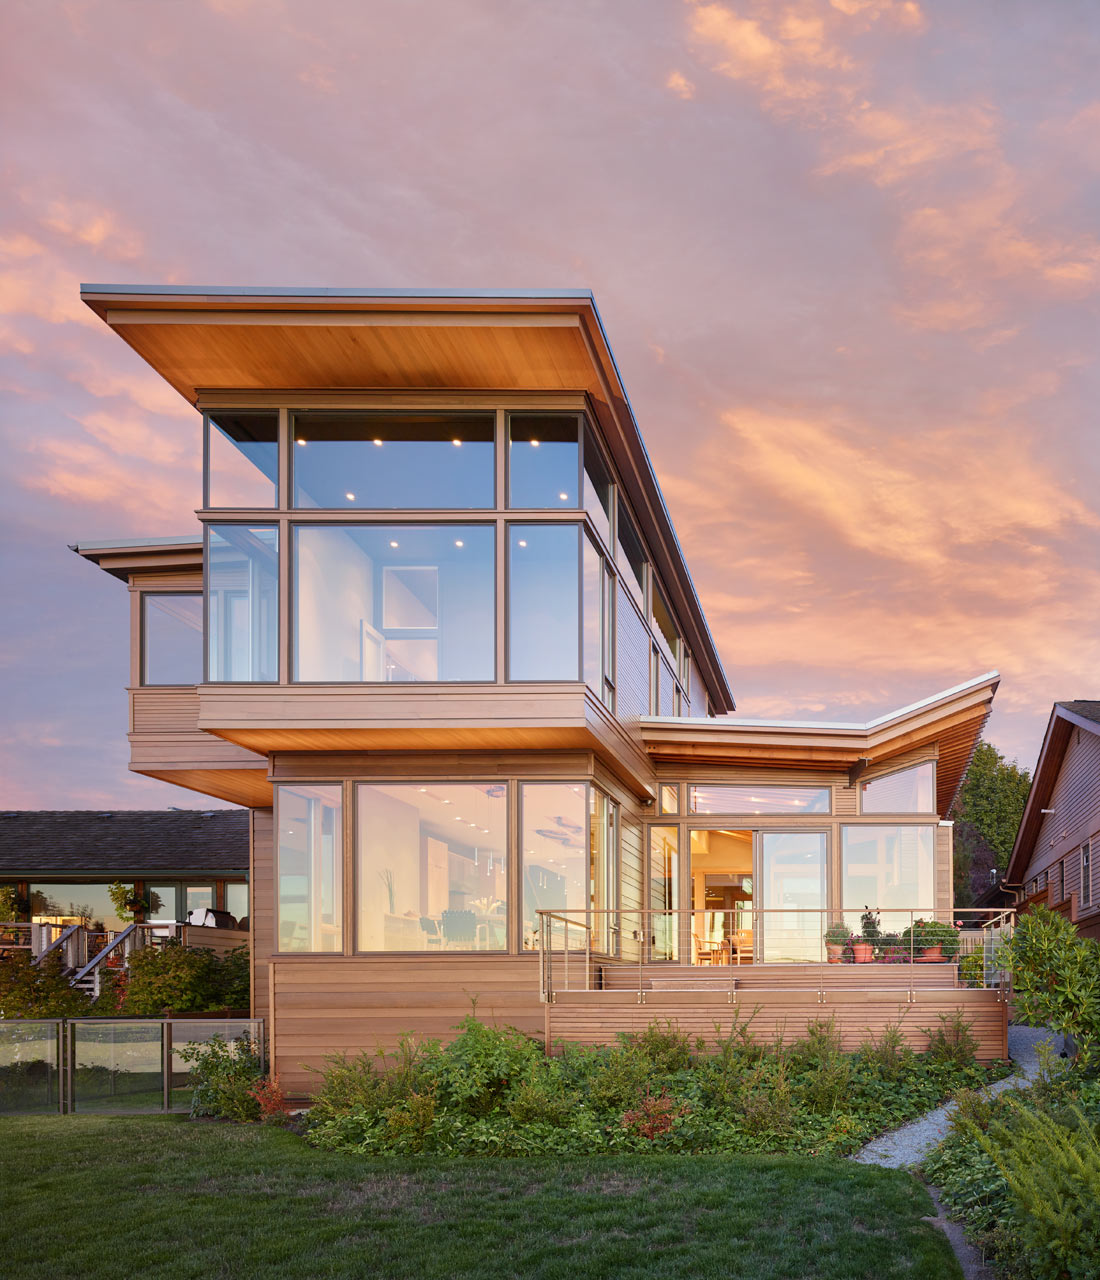 The Elliott Bay House by FINNE Architects